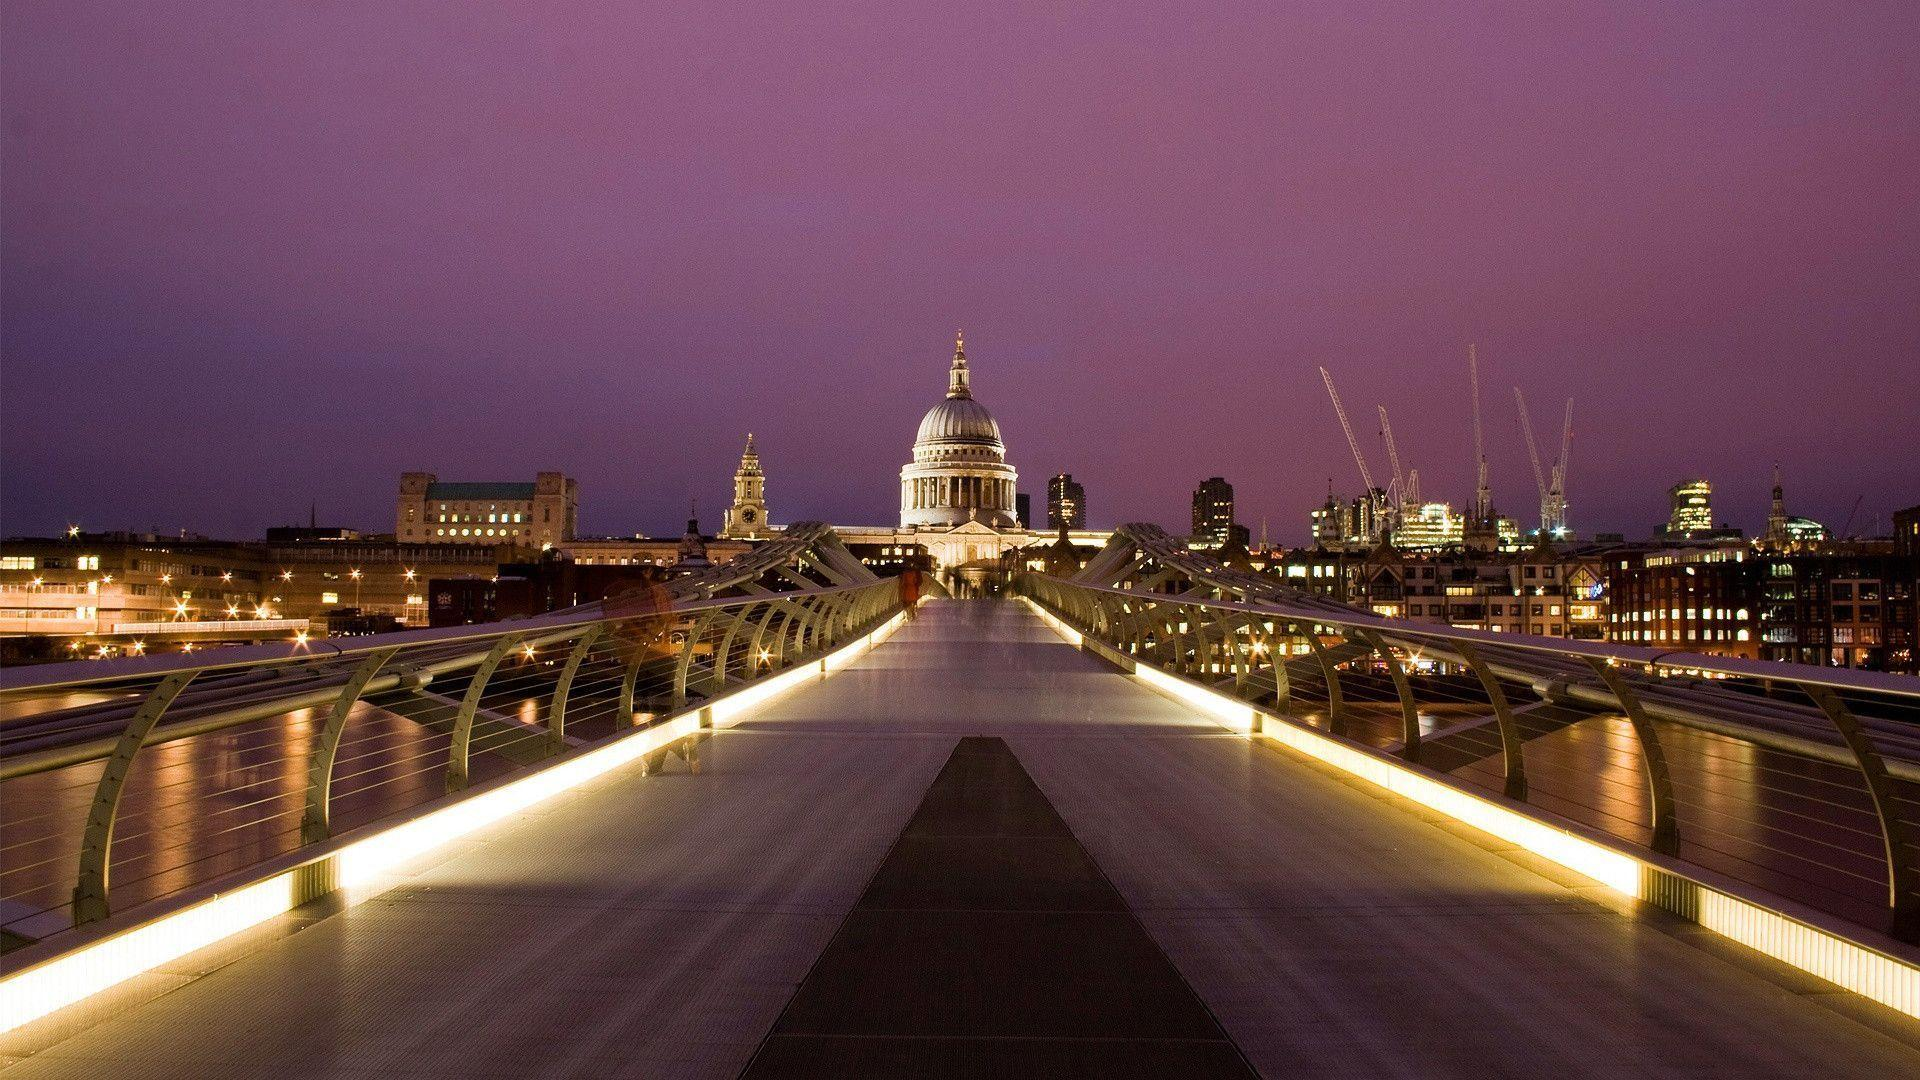 millennium bridge london cityscape wallpaper | Desktop Backgrounds ...